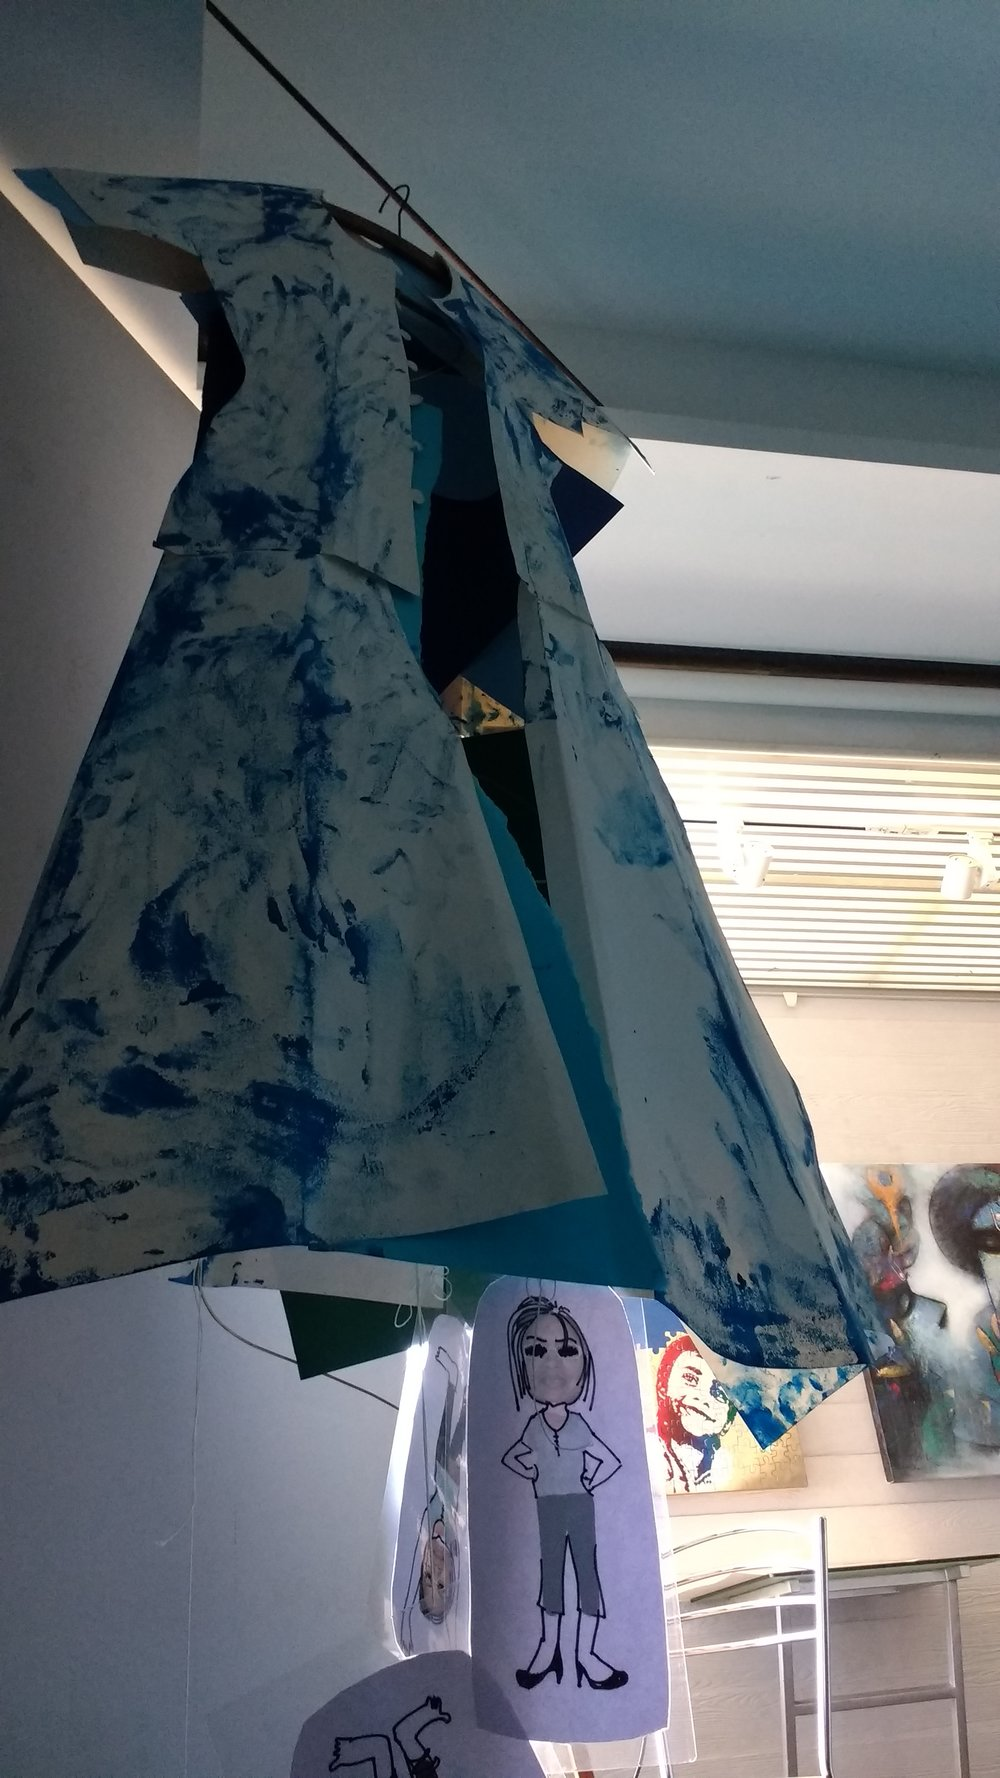 "OUTER BODY, ""THE PAPER DRESS"" I DESIGNED FOR MYSELF, HAD BLUE COLOR STAINS ALL OVER. 'ME' HANGING INSIDE THE EMPTY SPACE,  UPSIDE DOWN, SHAKING BY THE AIR BLOWN THROUGH THE FAN, OPERATING BY THE BATTERY."